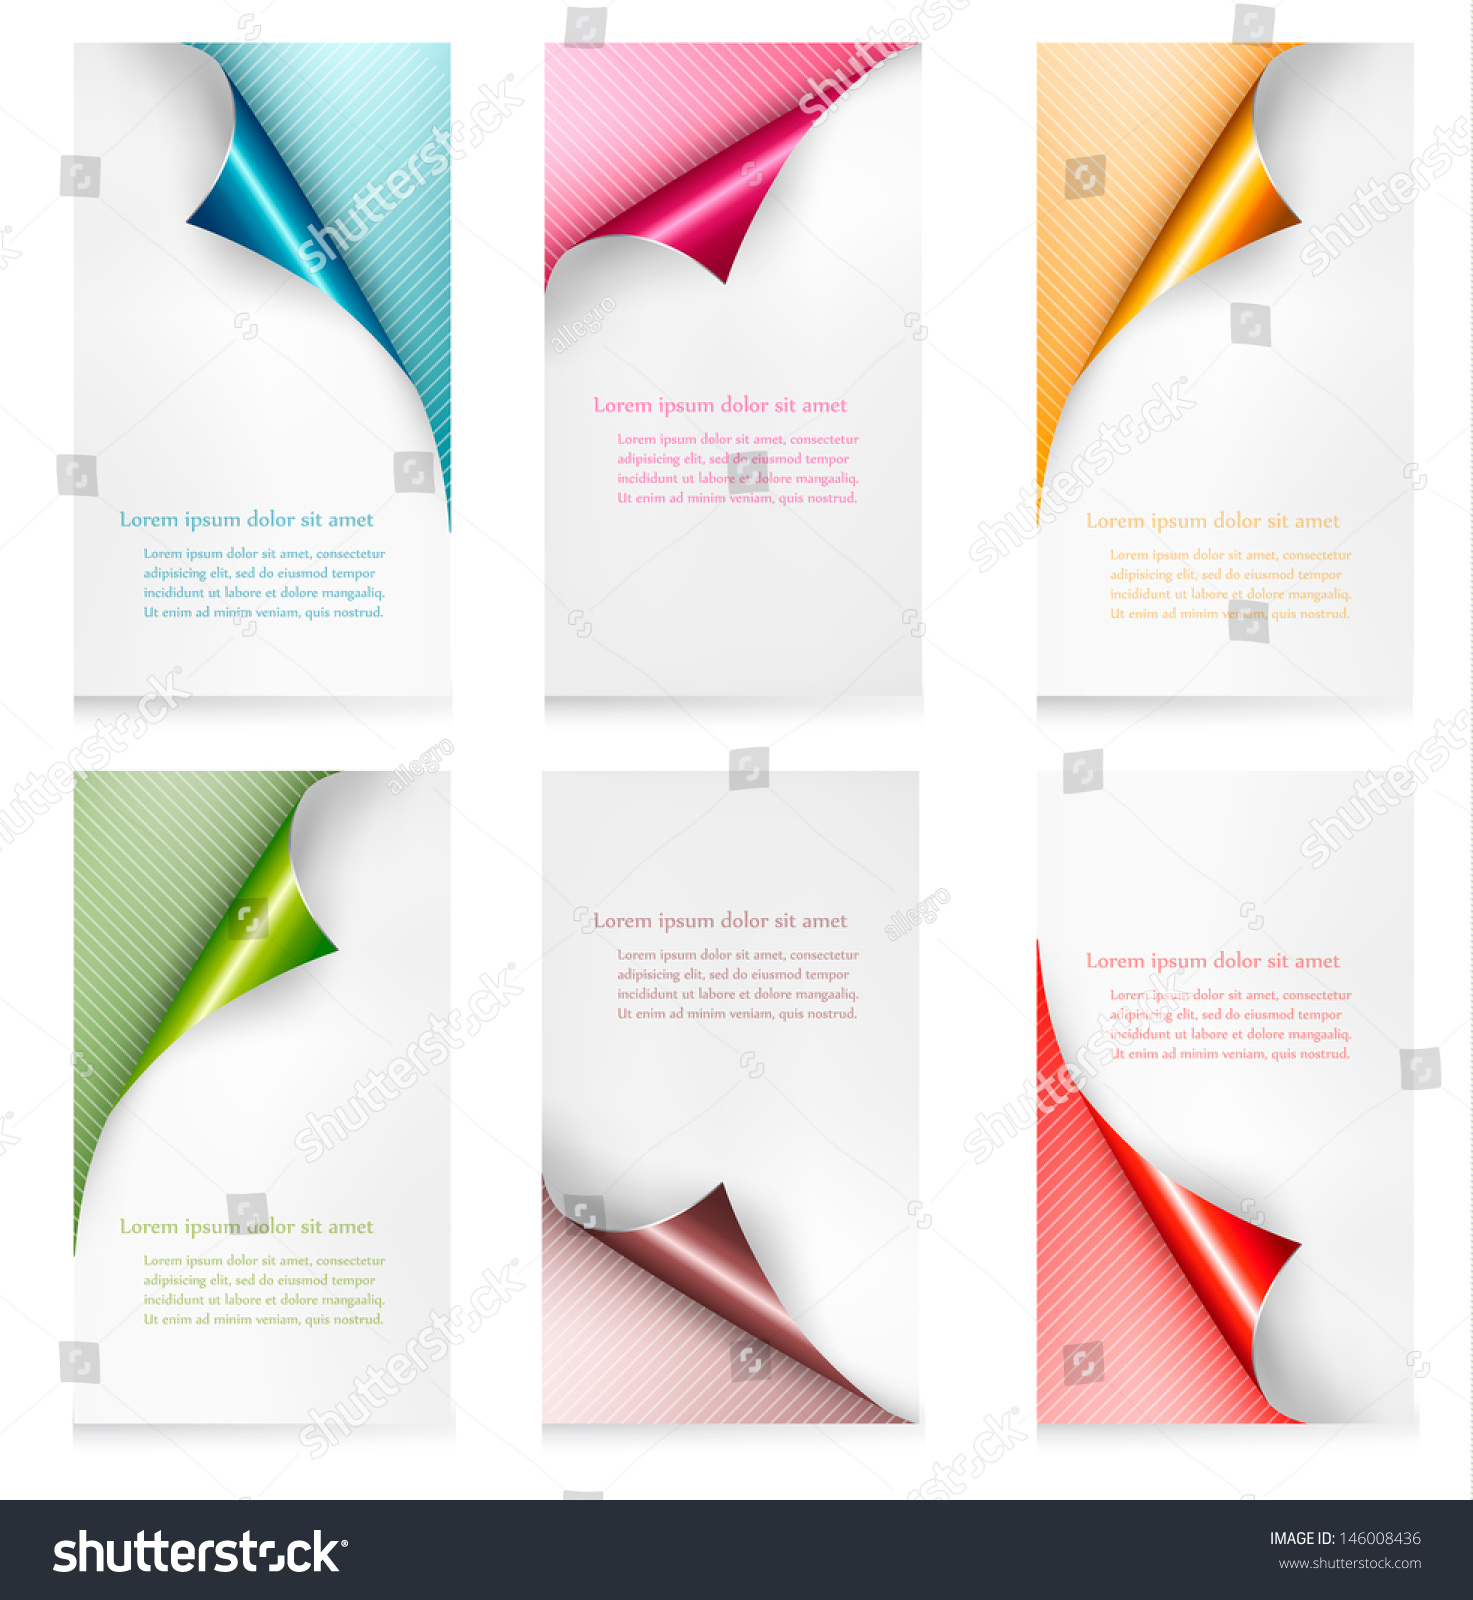 Paper Design Template shipping bill of lading template hotel – Paper Design Template